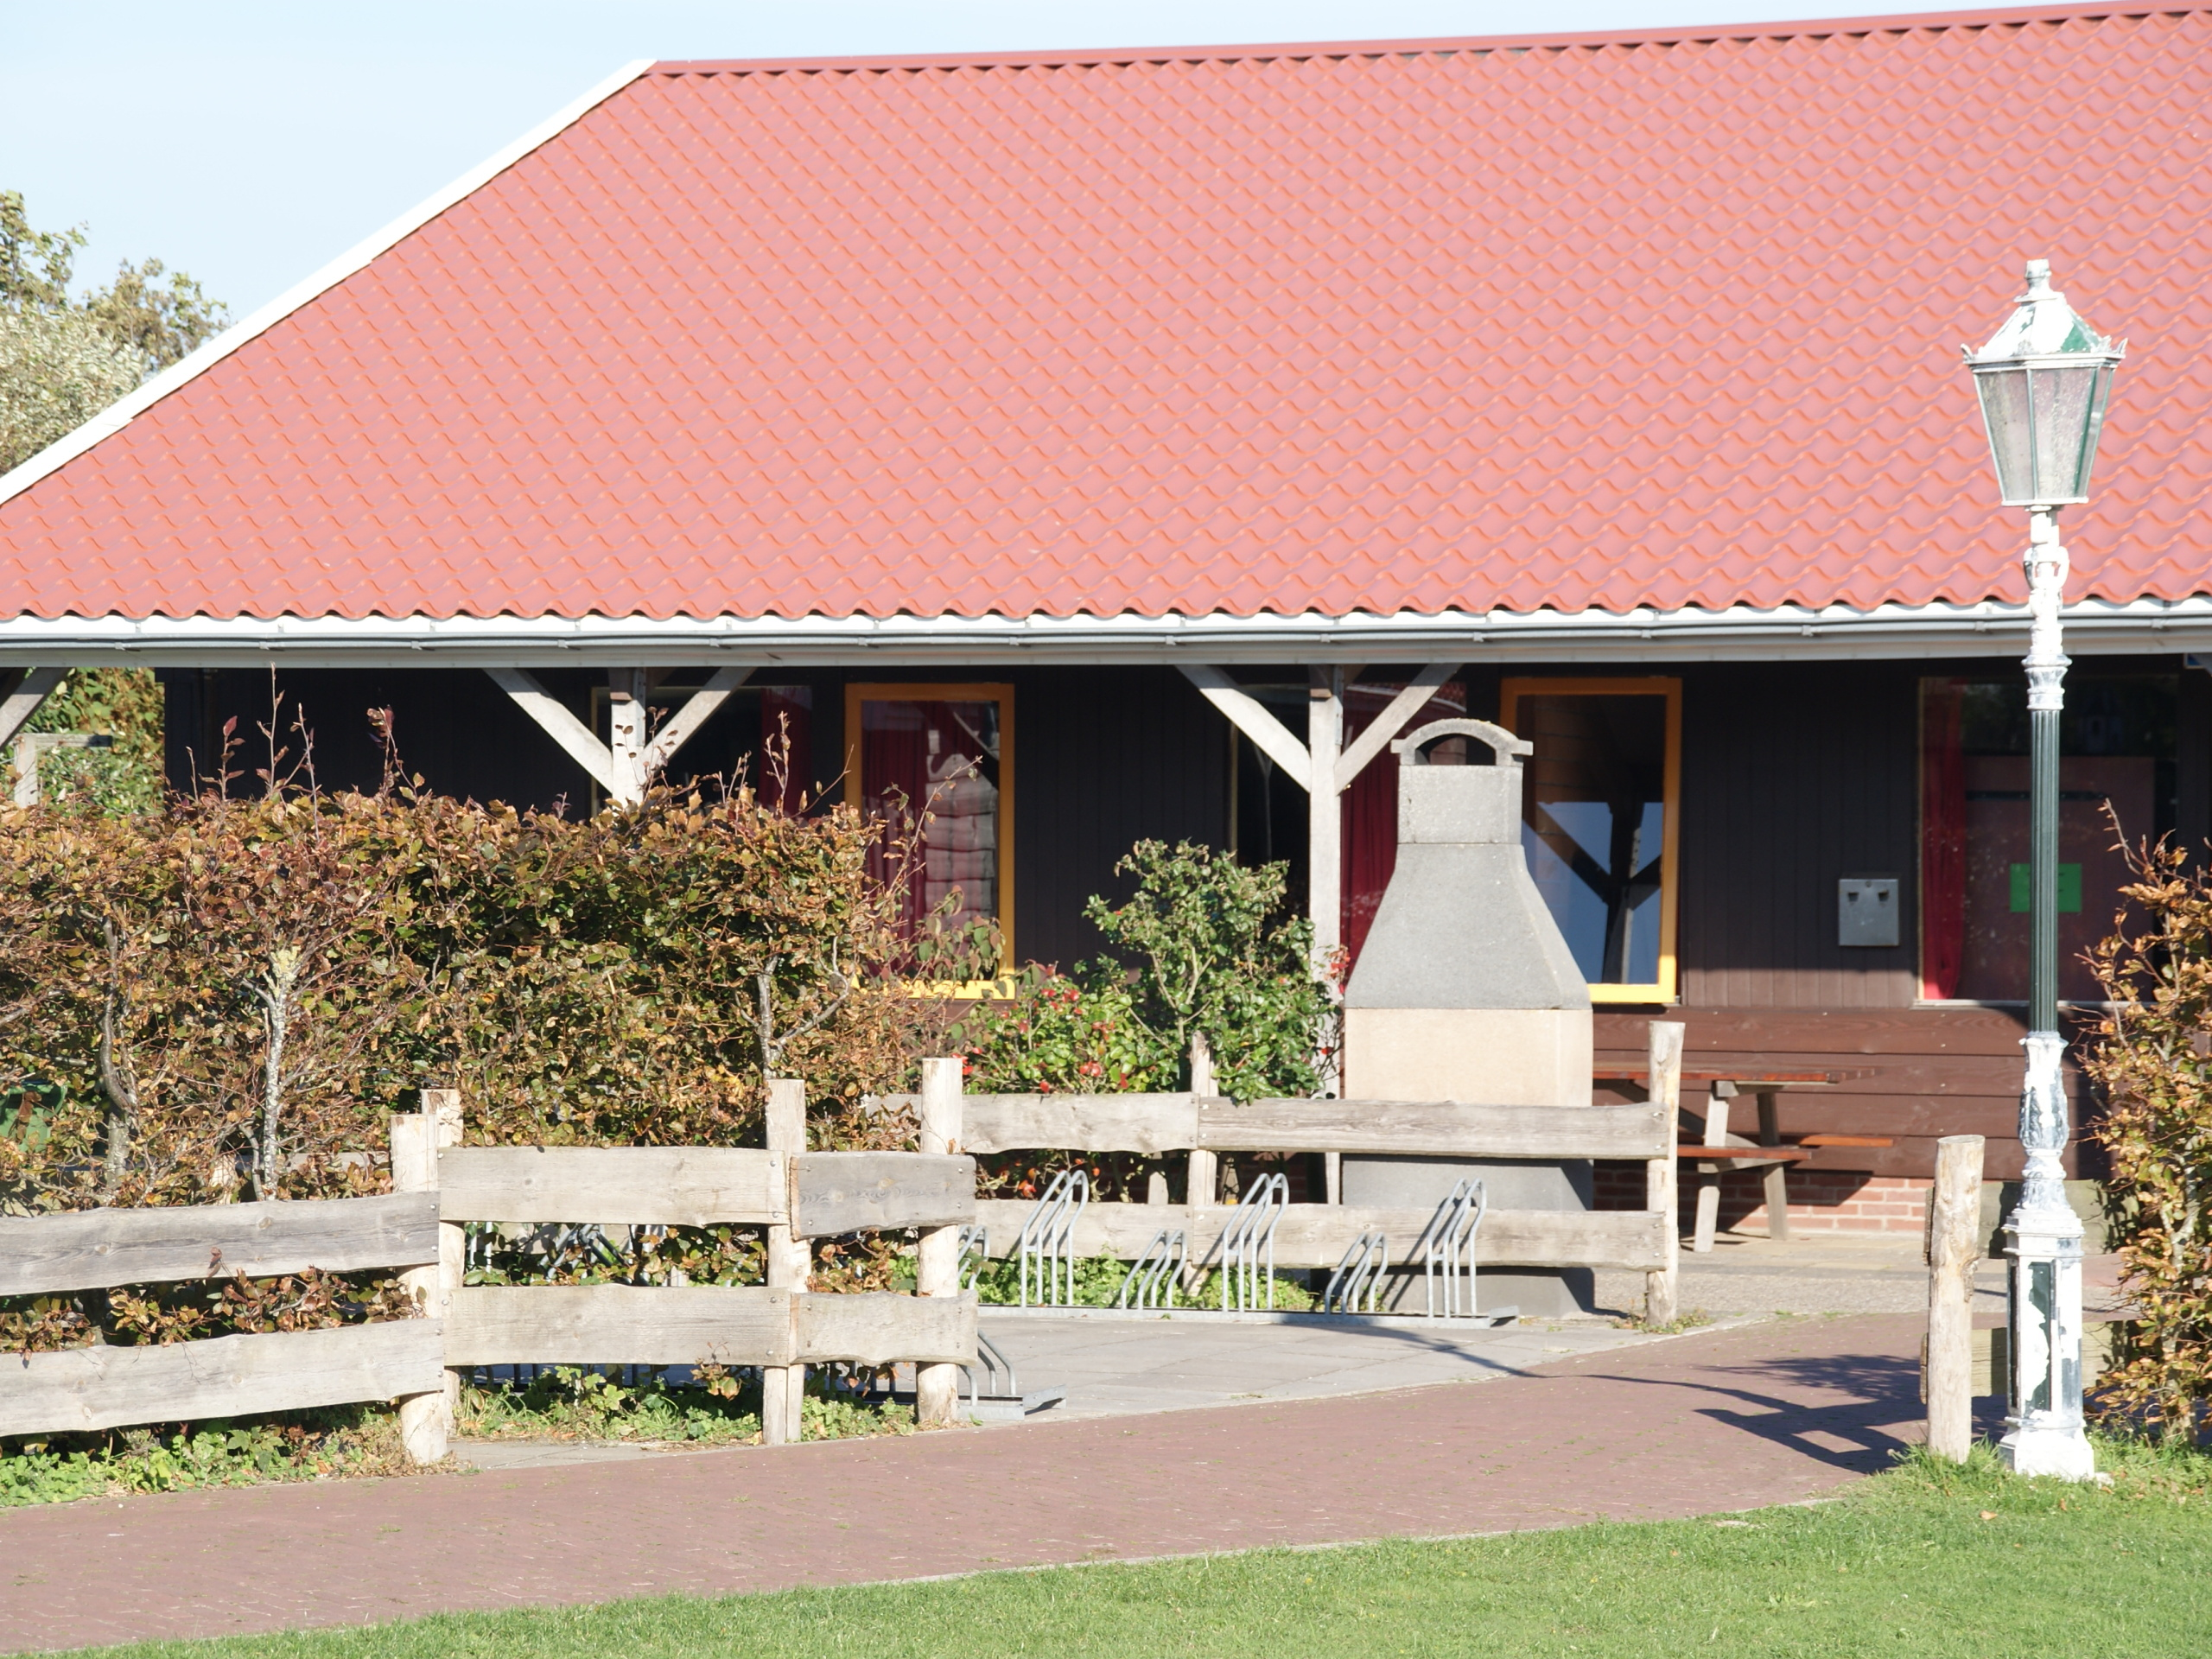 Country western style group accommodation near Den Hoorn